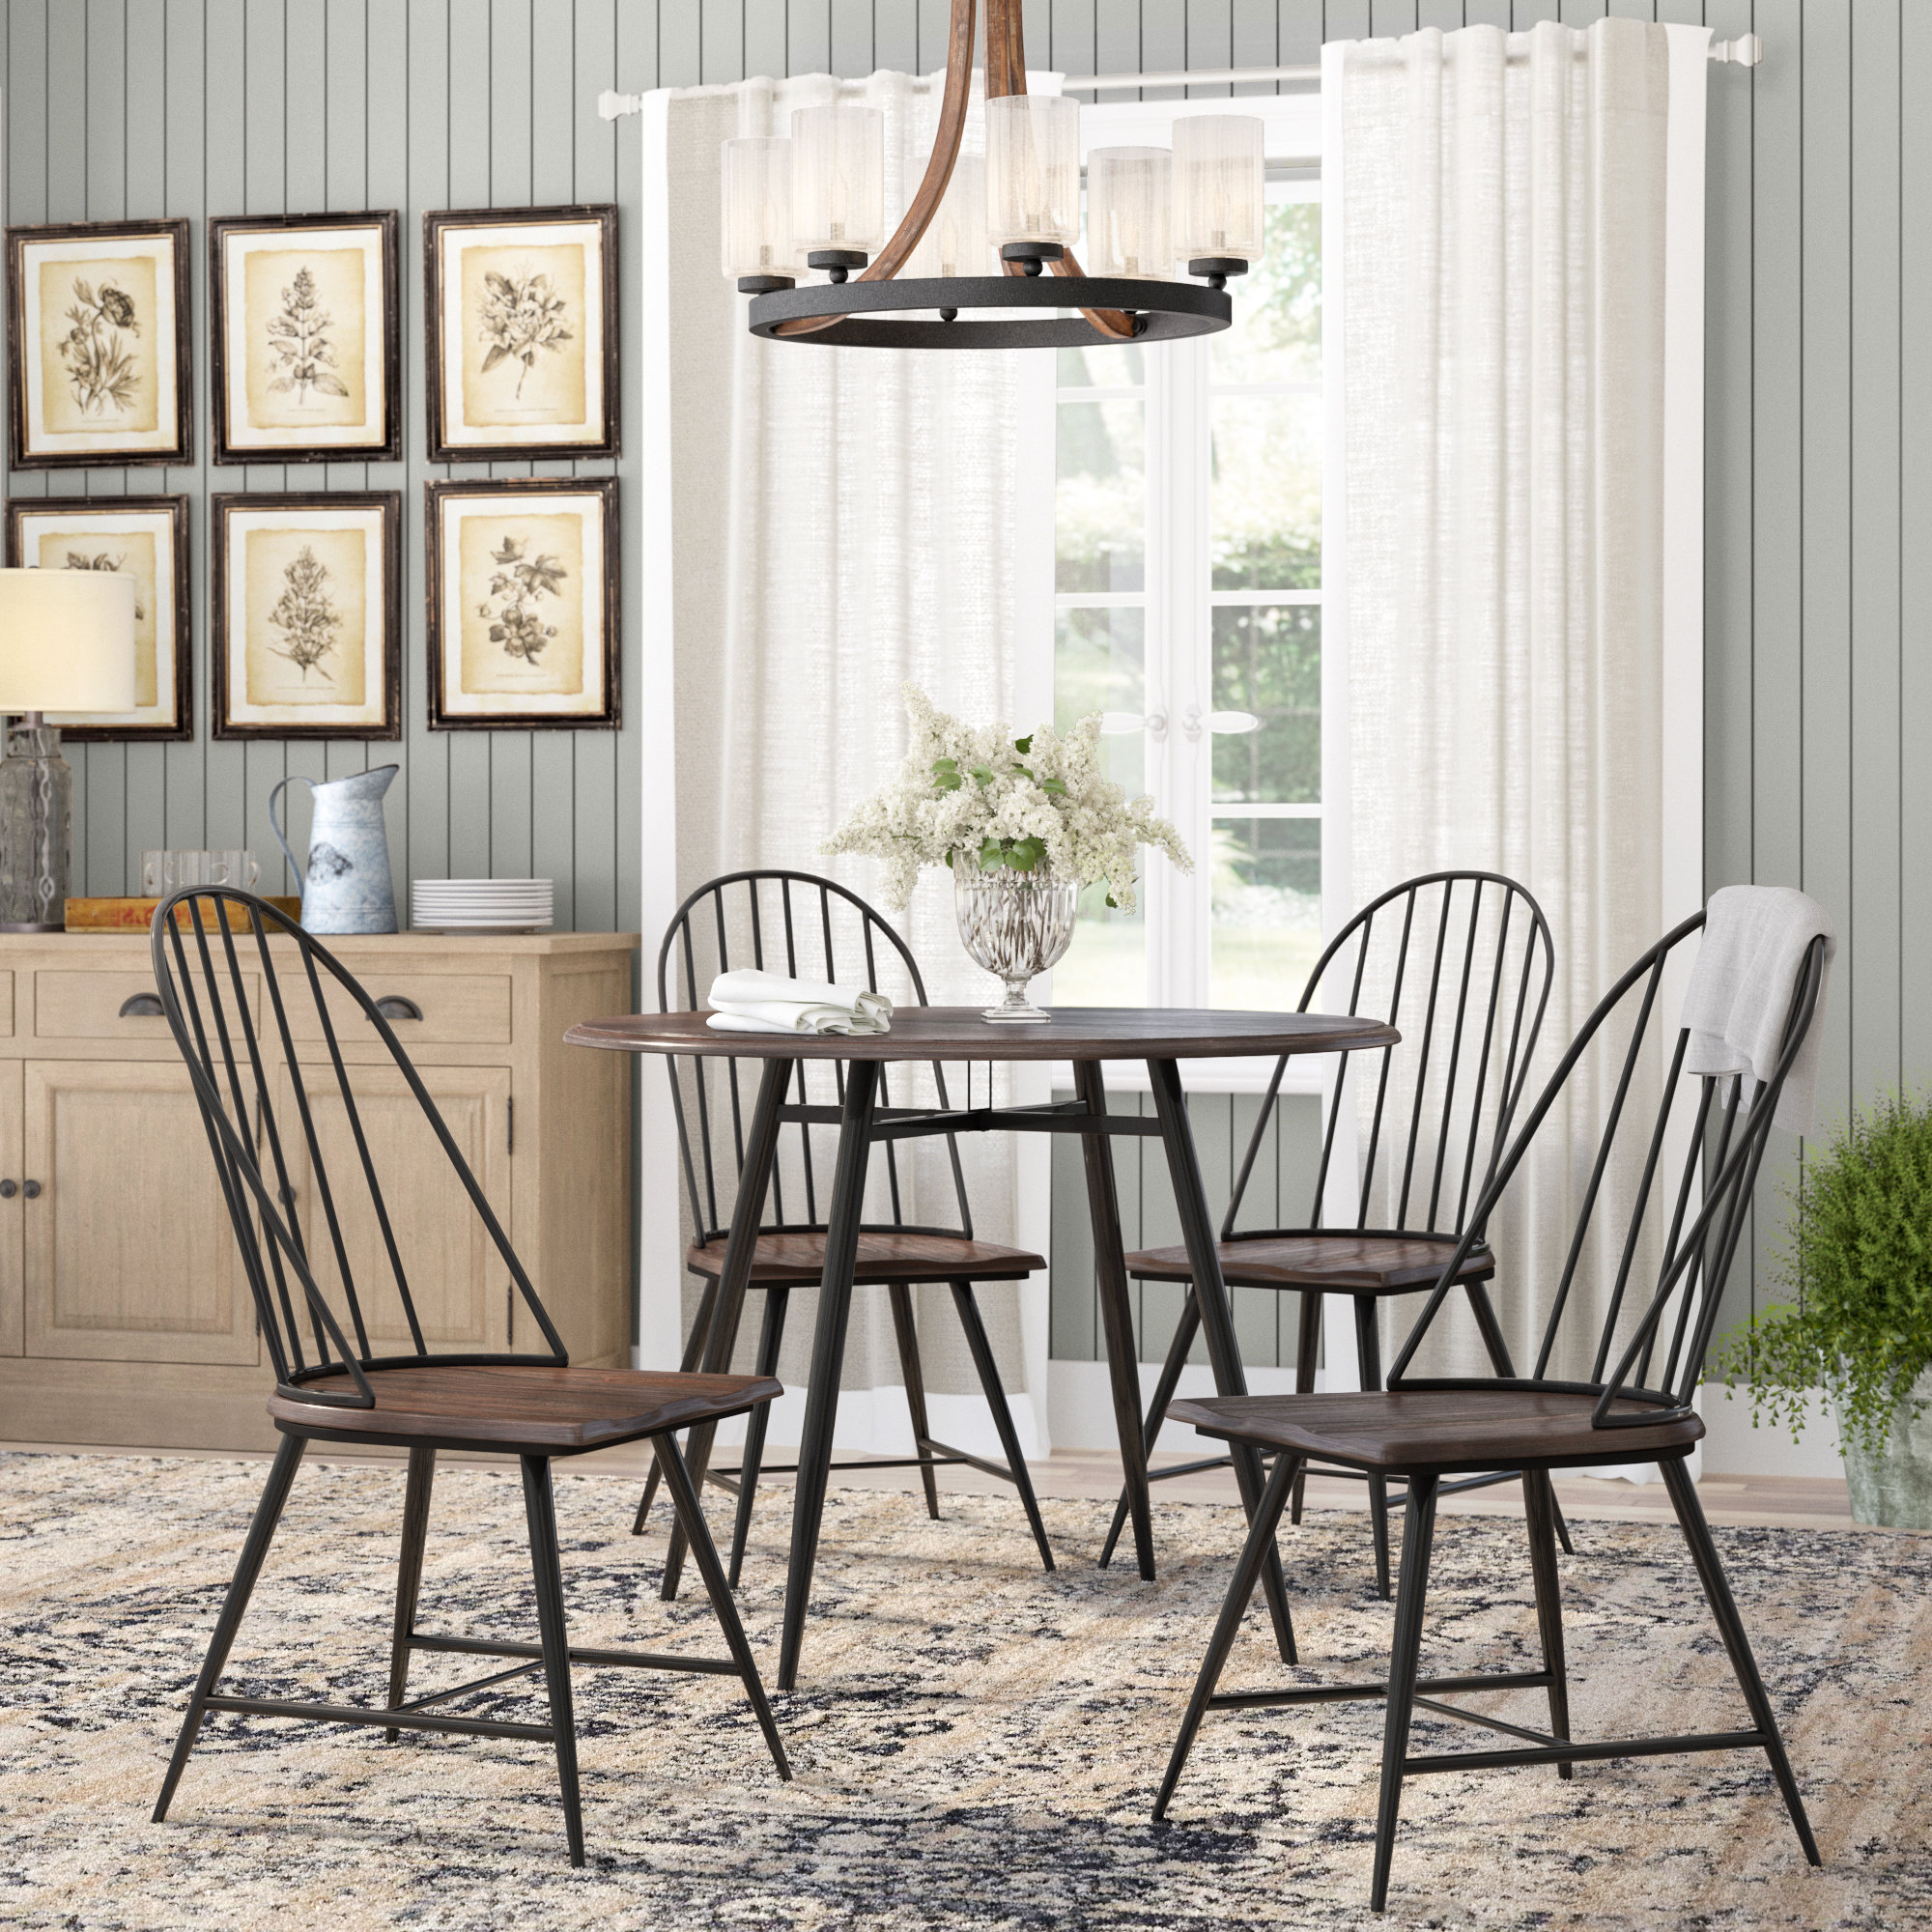 Preferred Laurel Foundry Modern Farmhouse Hughley 5 Piece Dining Set & Reviews Throughout Middleport 5 Piece Dining Sets (View 4 of 25)